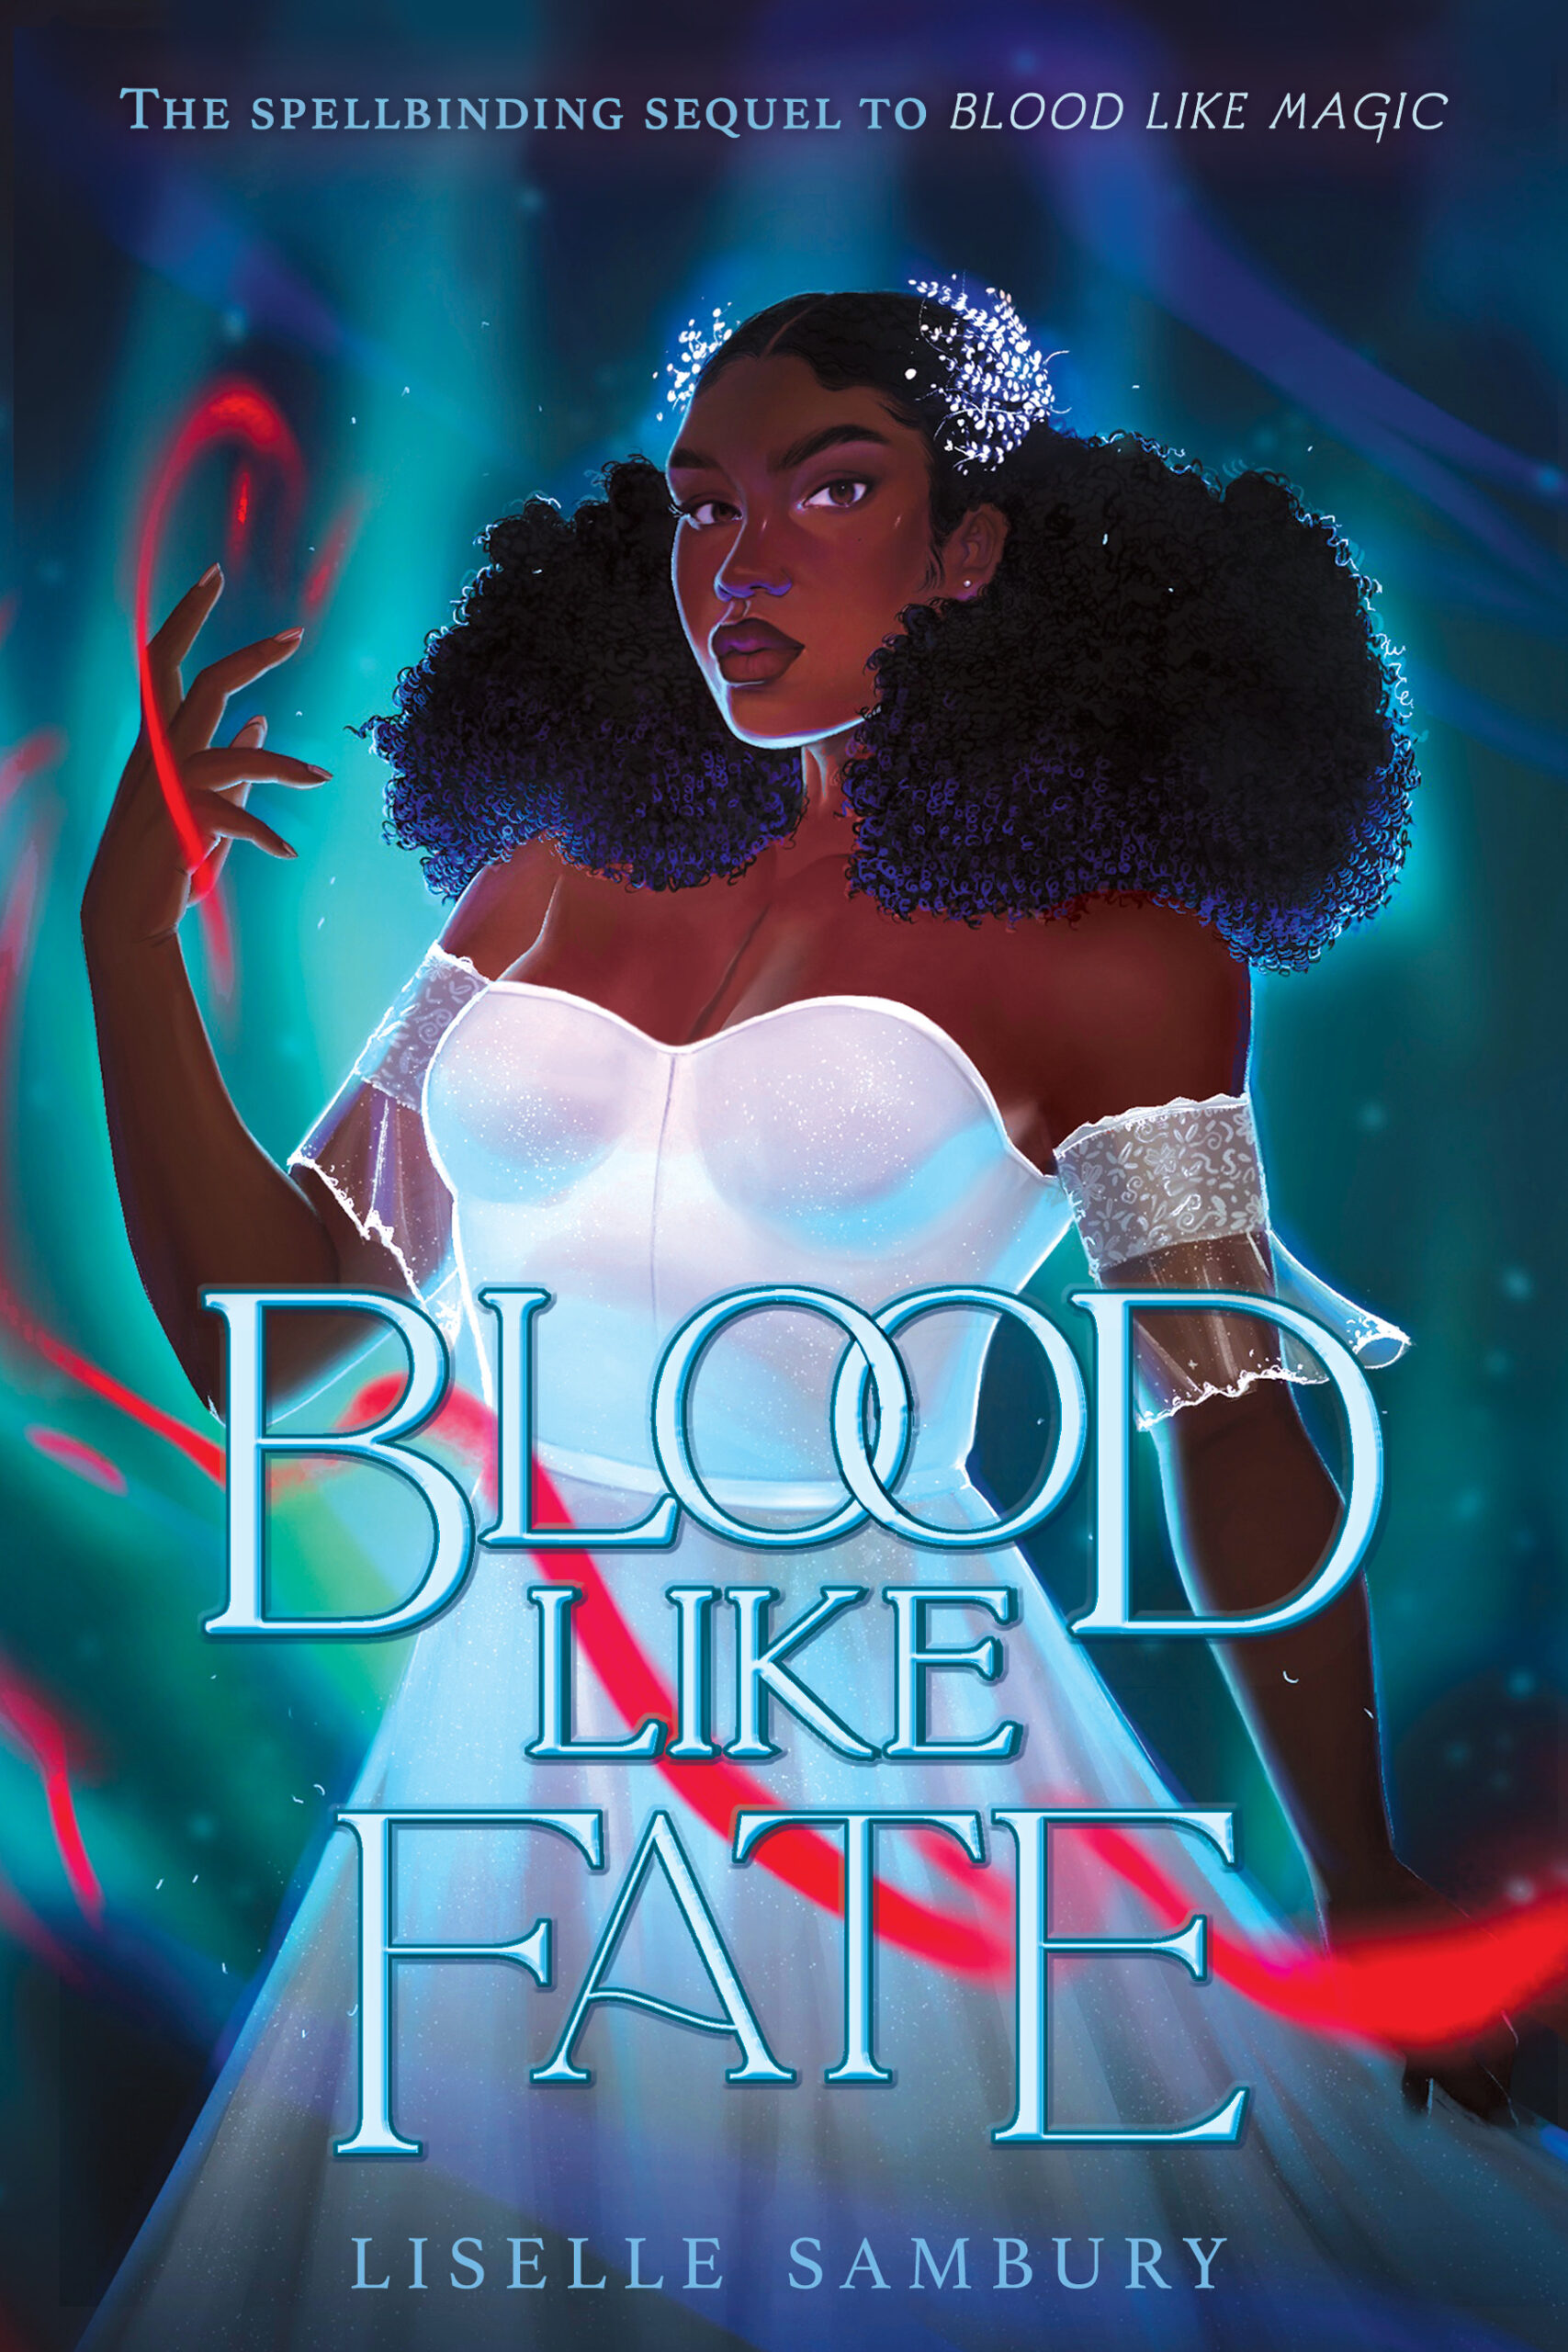 the cover of Blood Like Fate which is a Black girl in a white dress, with thick naturally curly hair in a half up style with white hair pins, and a small scar on her chest